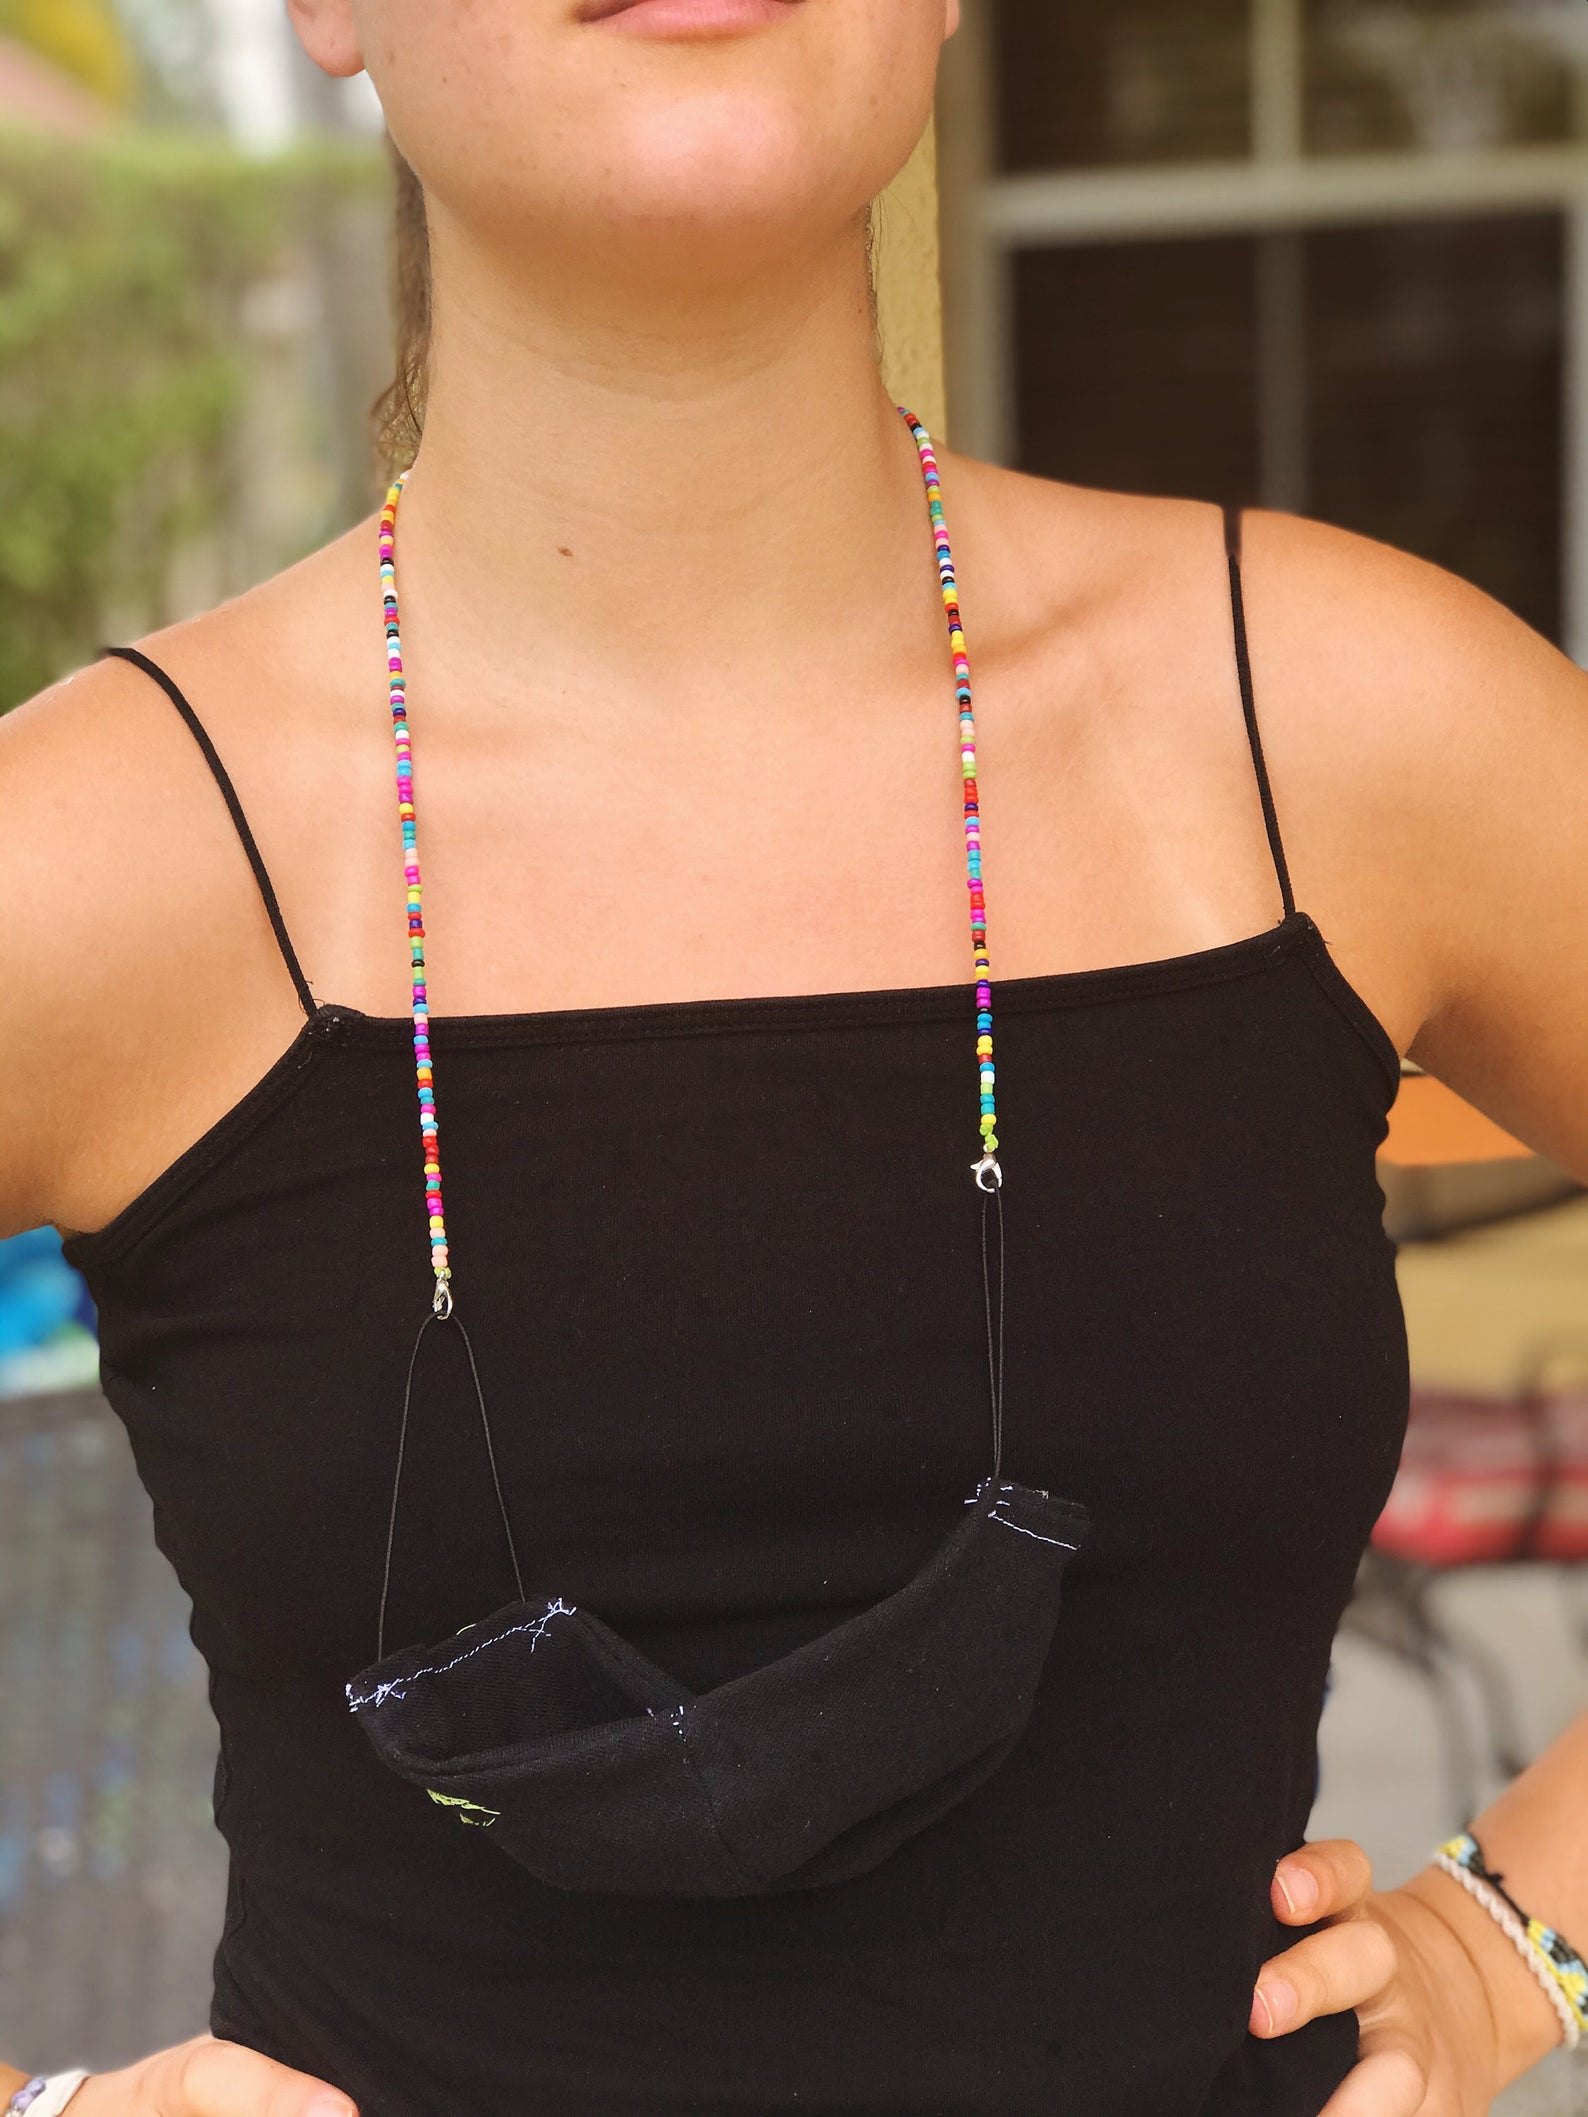 Cool face mask accessories for kids: A beaded mask lanyard that doubles as a necklace or bracelet